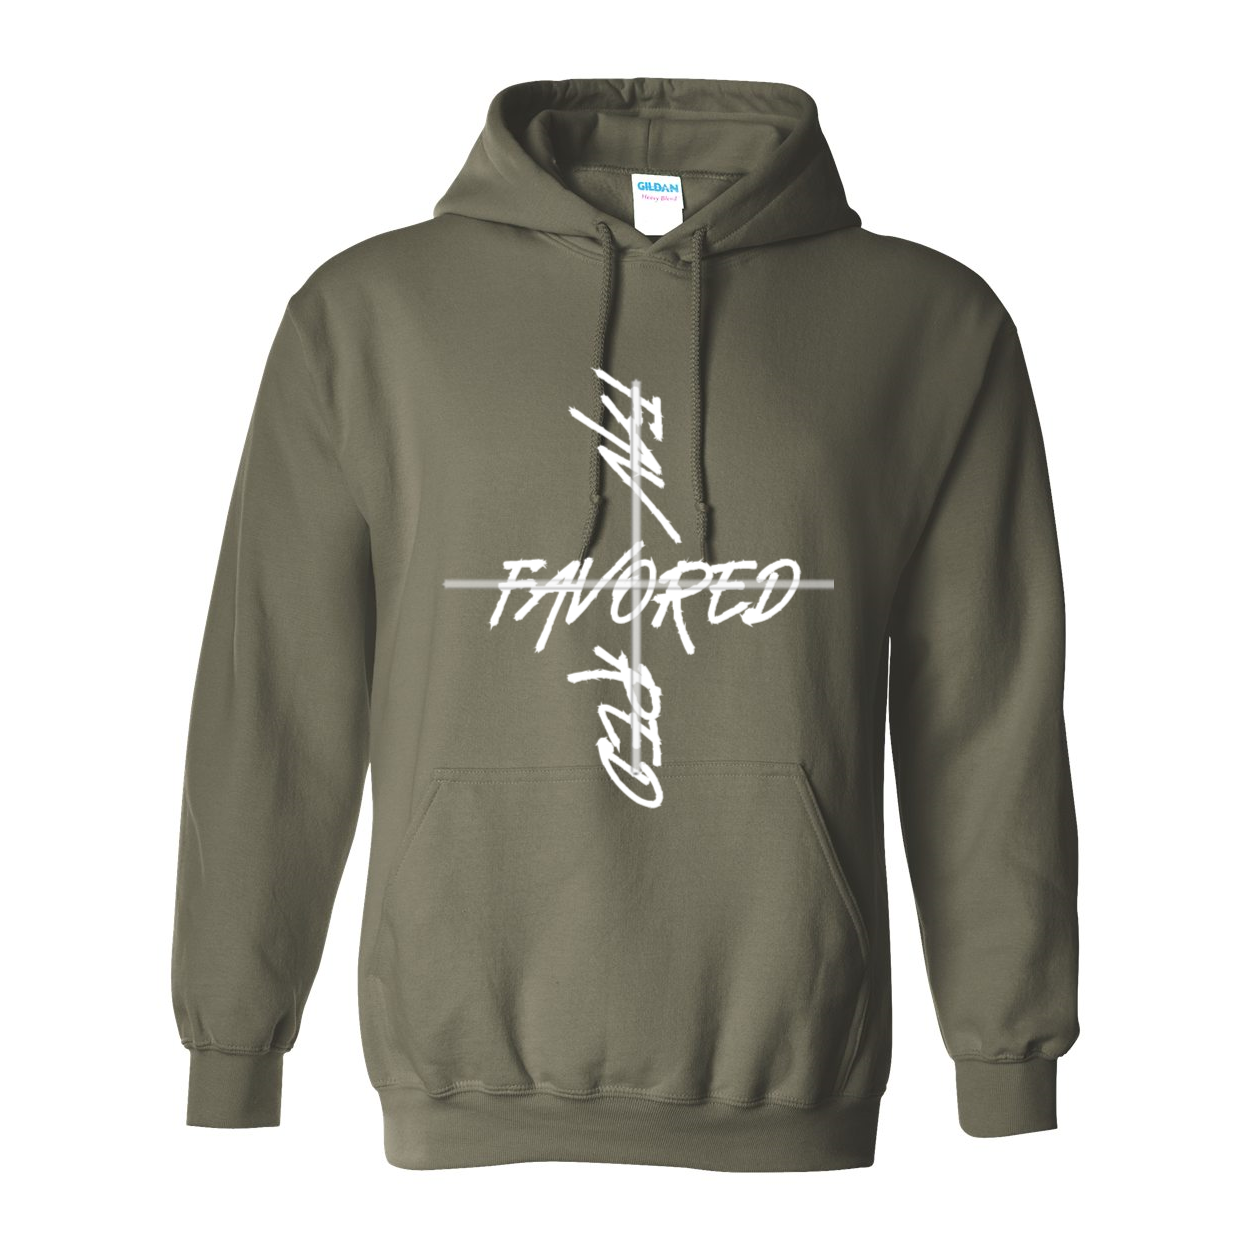 Favored 2 Unisex Heavy Blend Hooded Sweatshirt - Tie-Fly